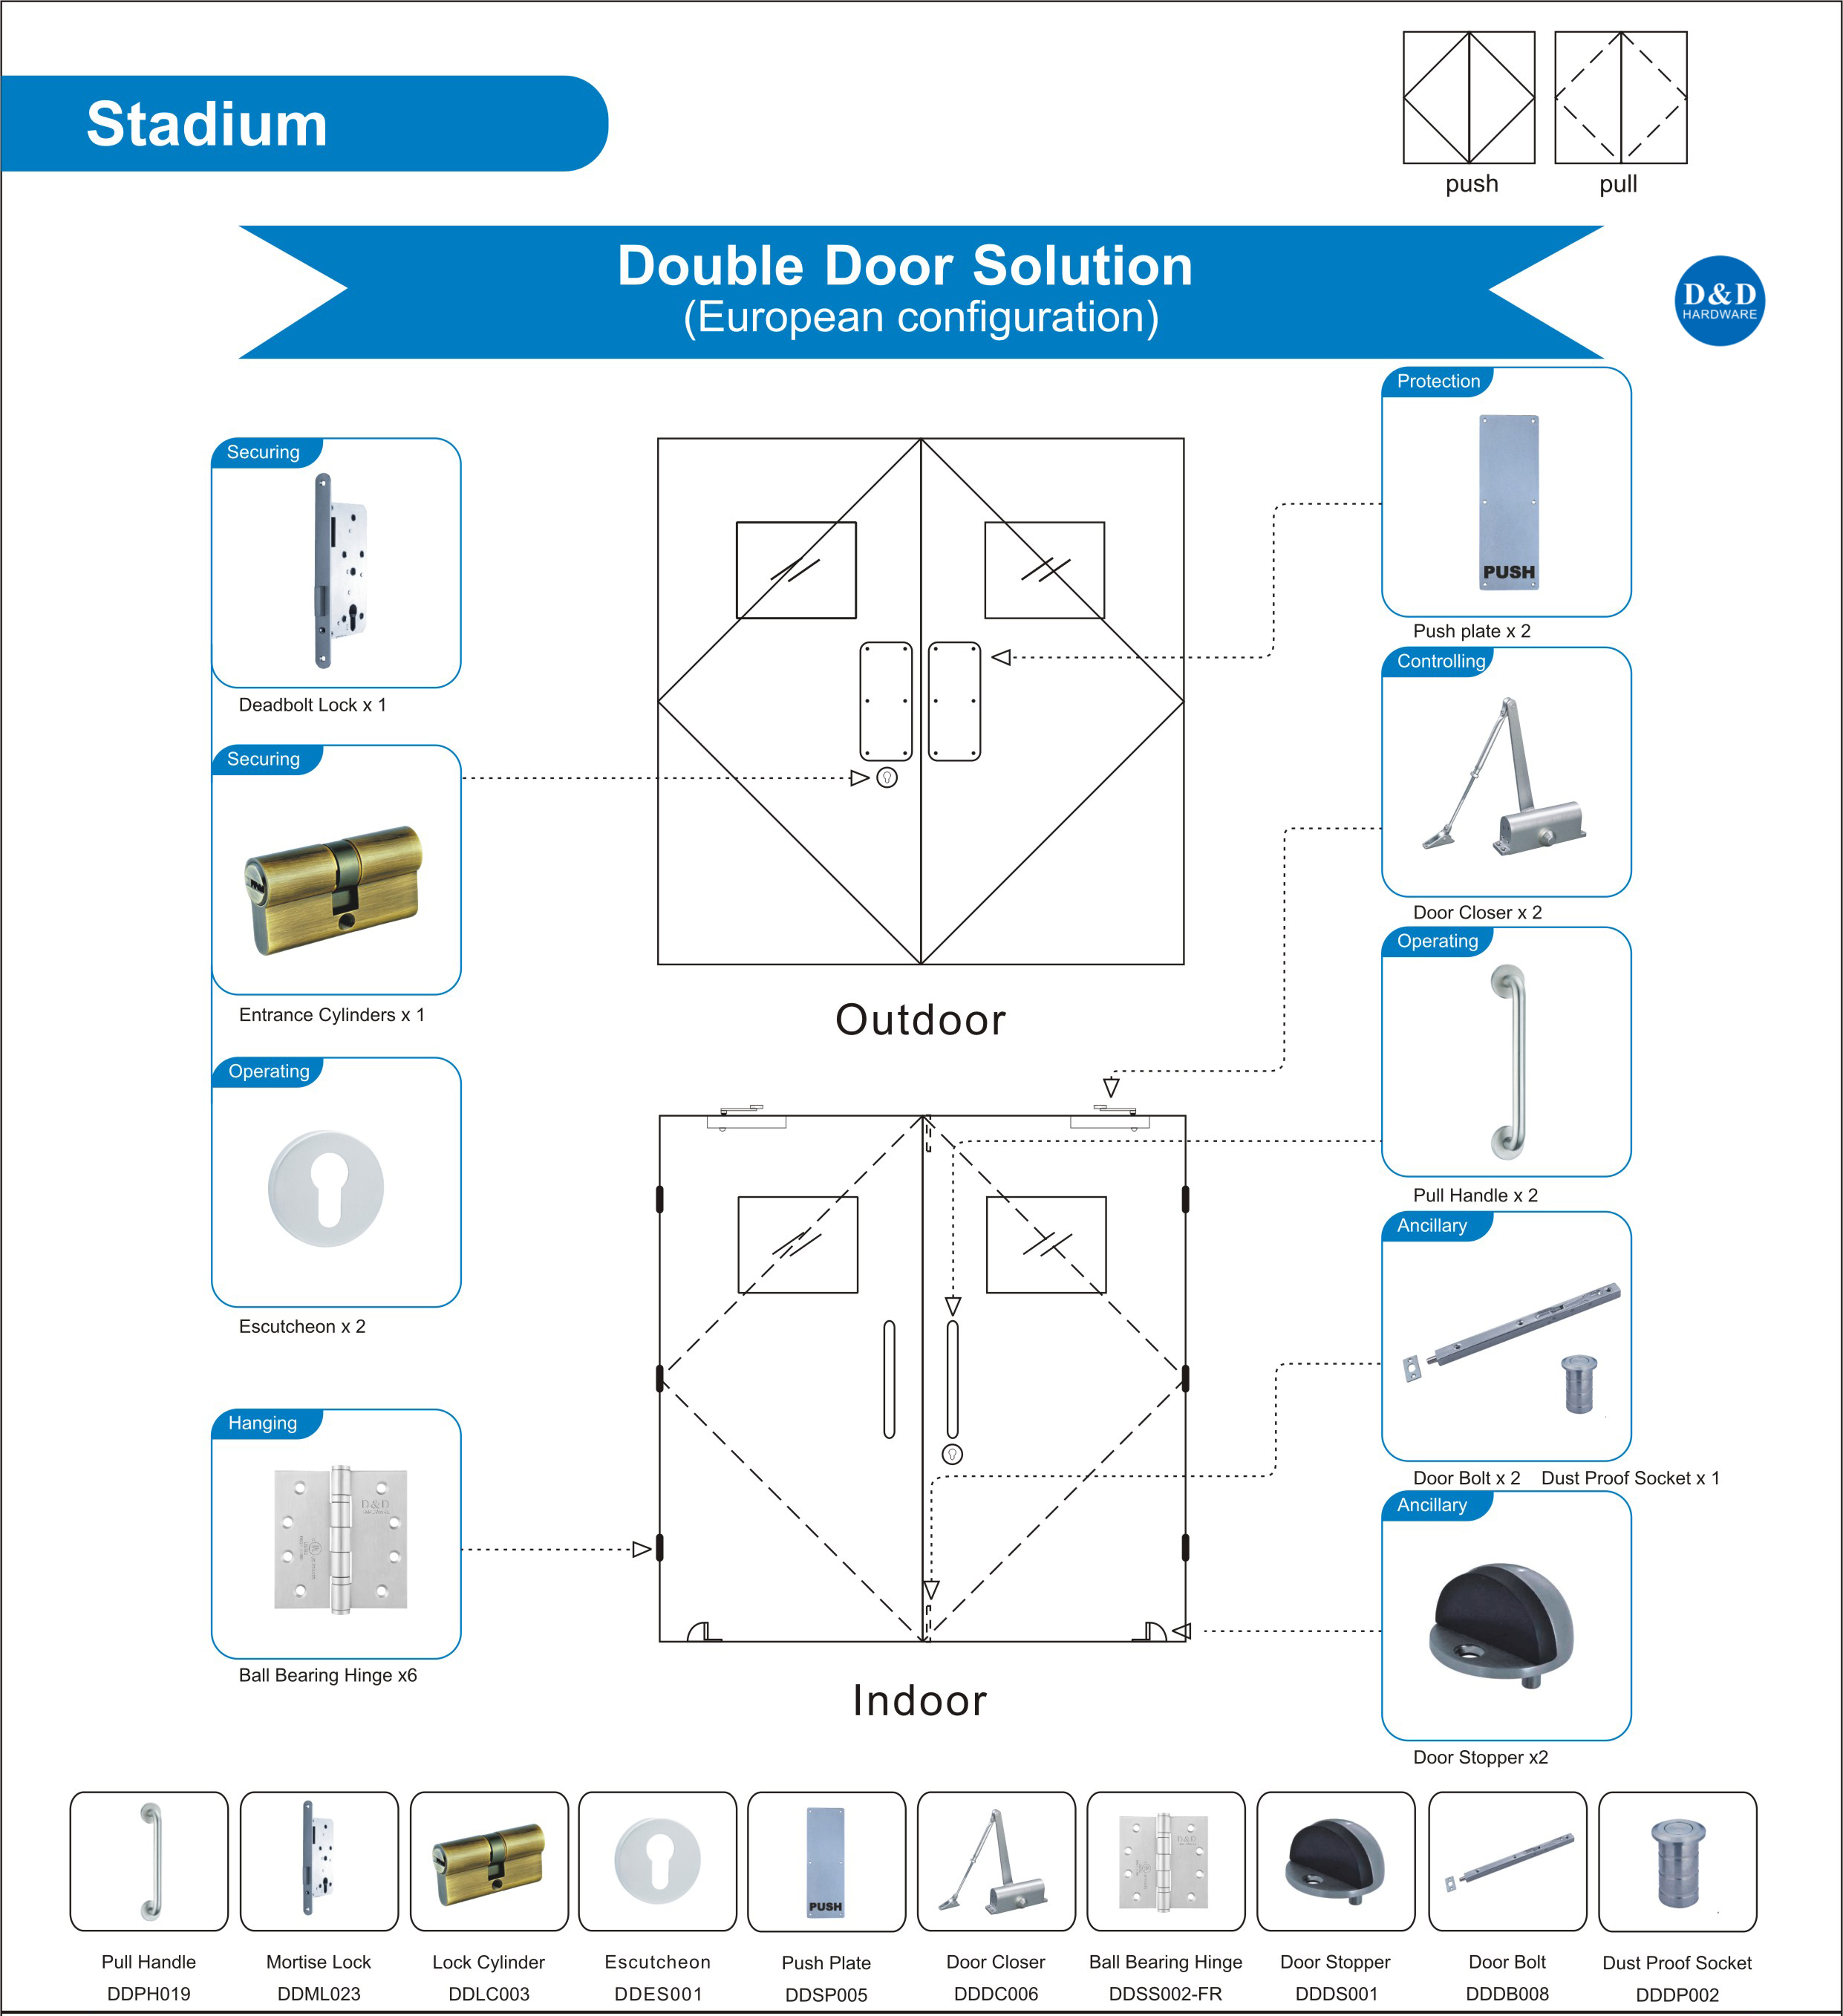 Building Hardware Solution for Stadium Double Door